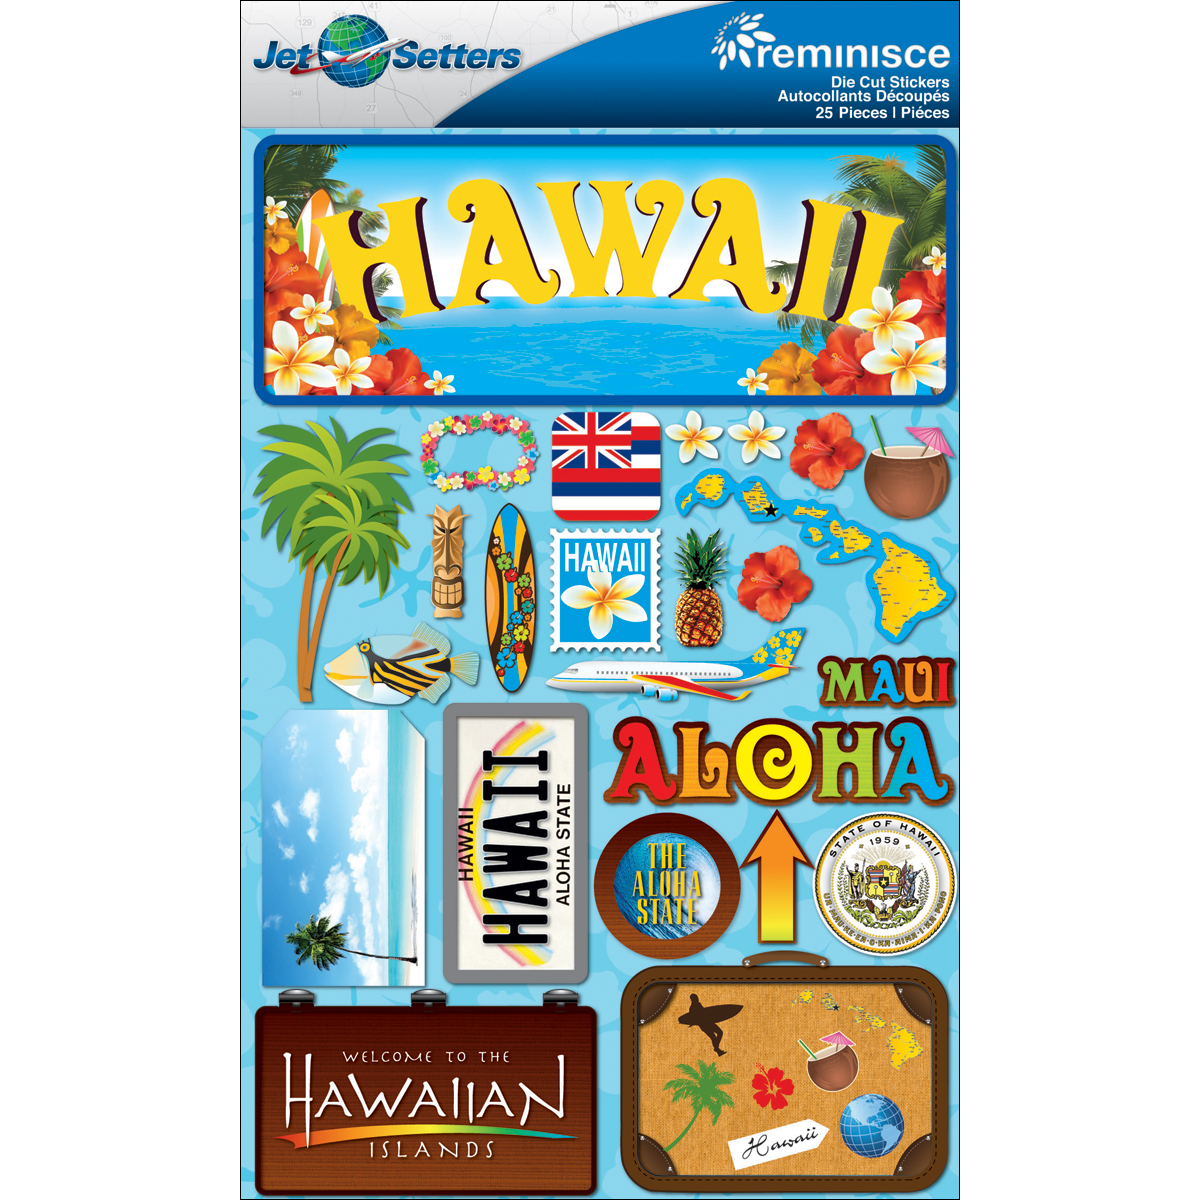 Hawaii - Reminisce Jet Setters State Dimensional Stickers